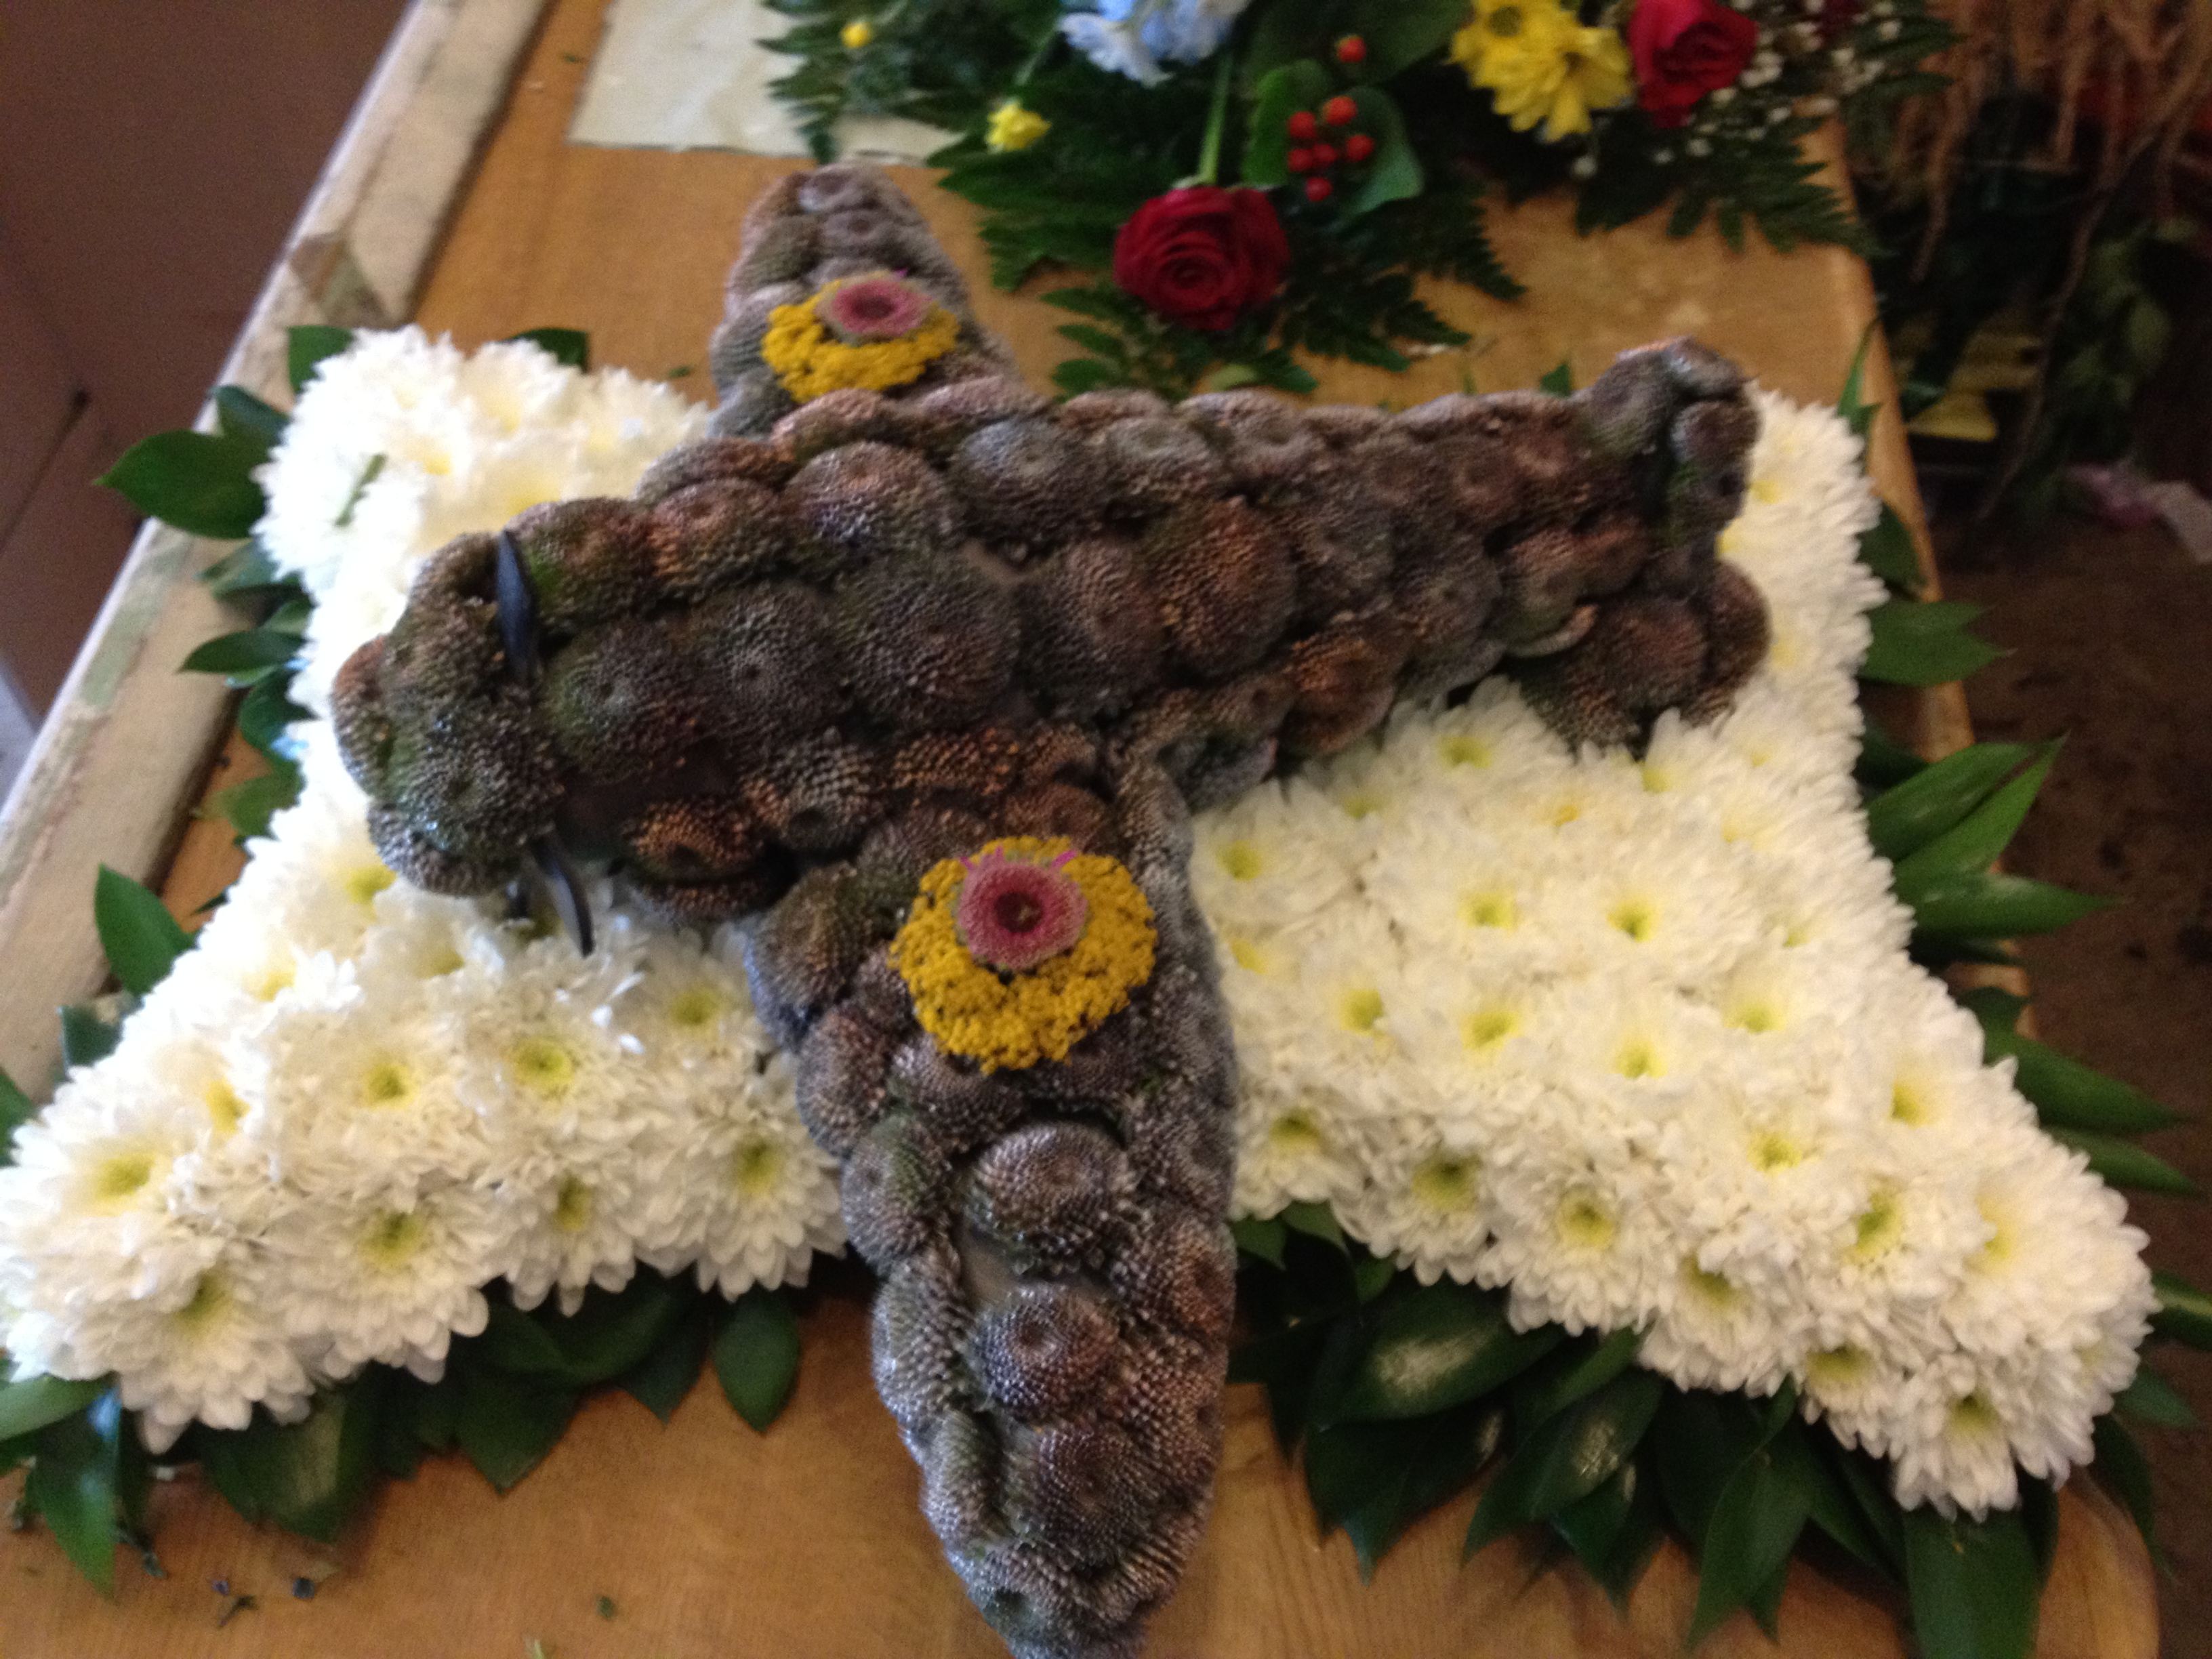 Special funeral tributes special funeral tributes izmirmasajfo